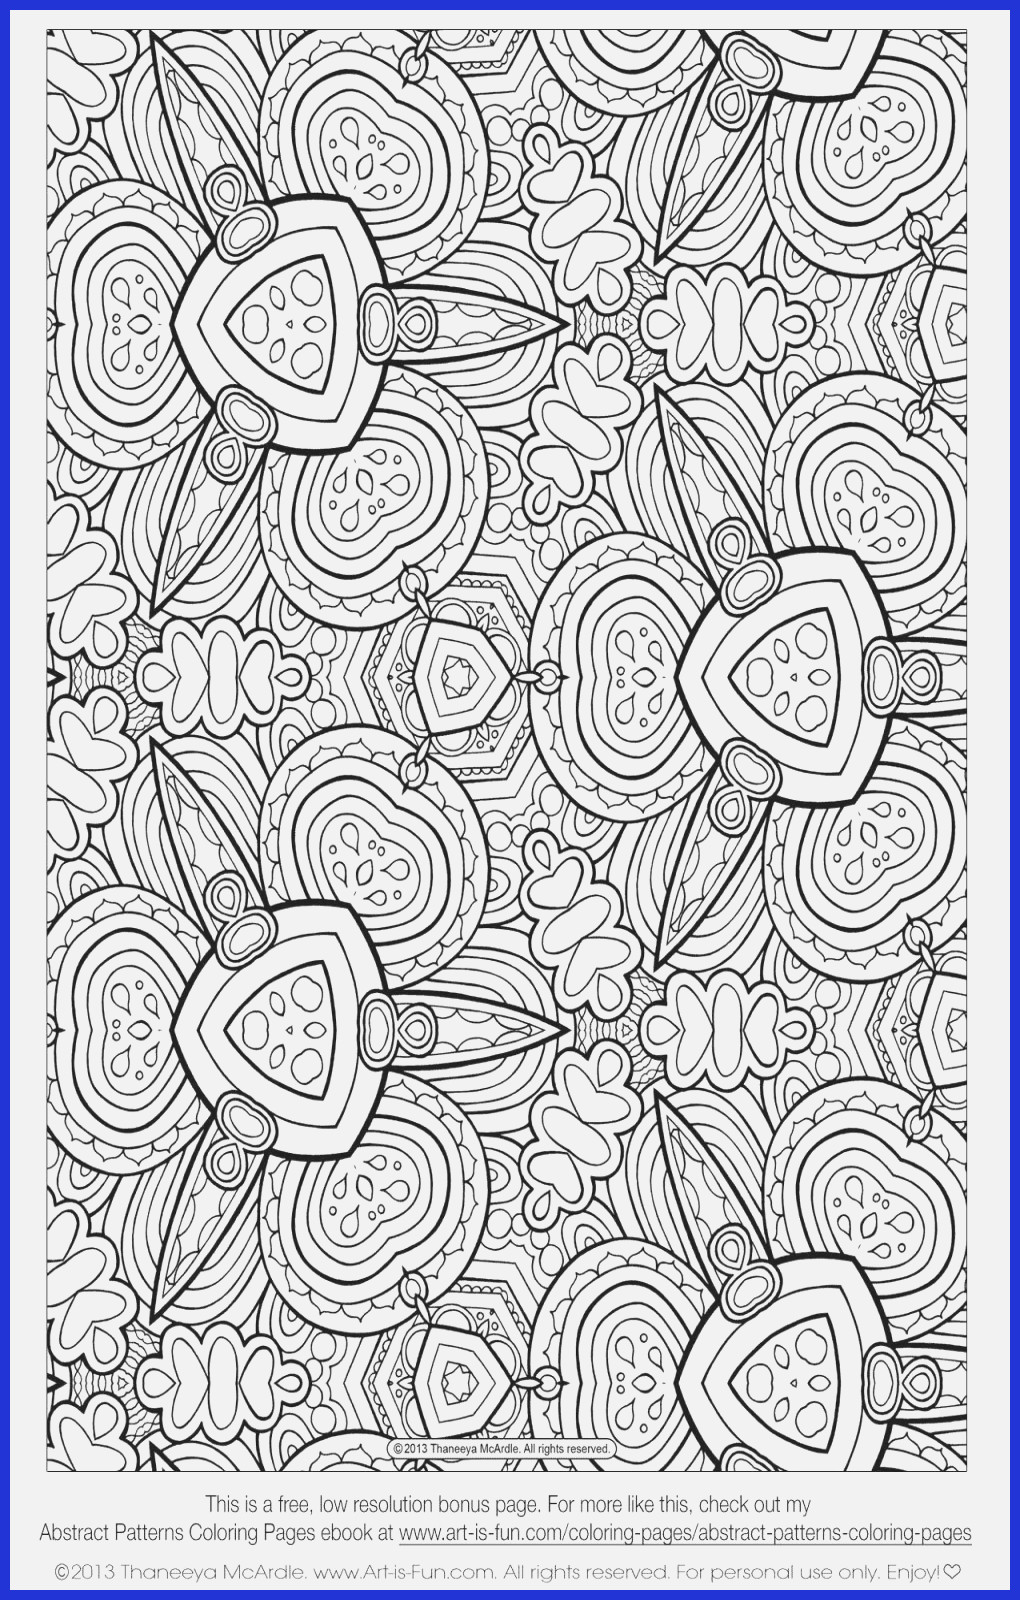 Free Christmas Coloring Pages For Adults Printable Hard To Color With Difficult And